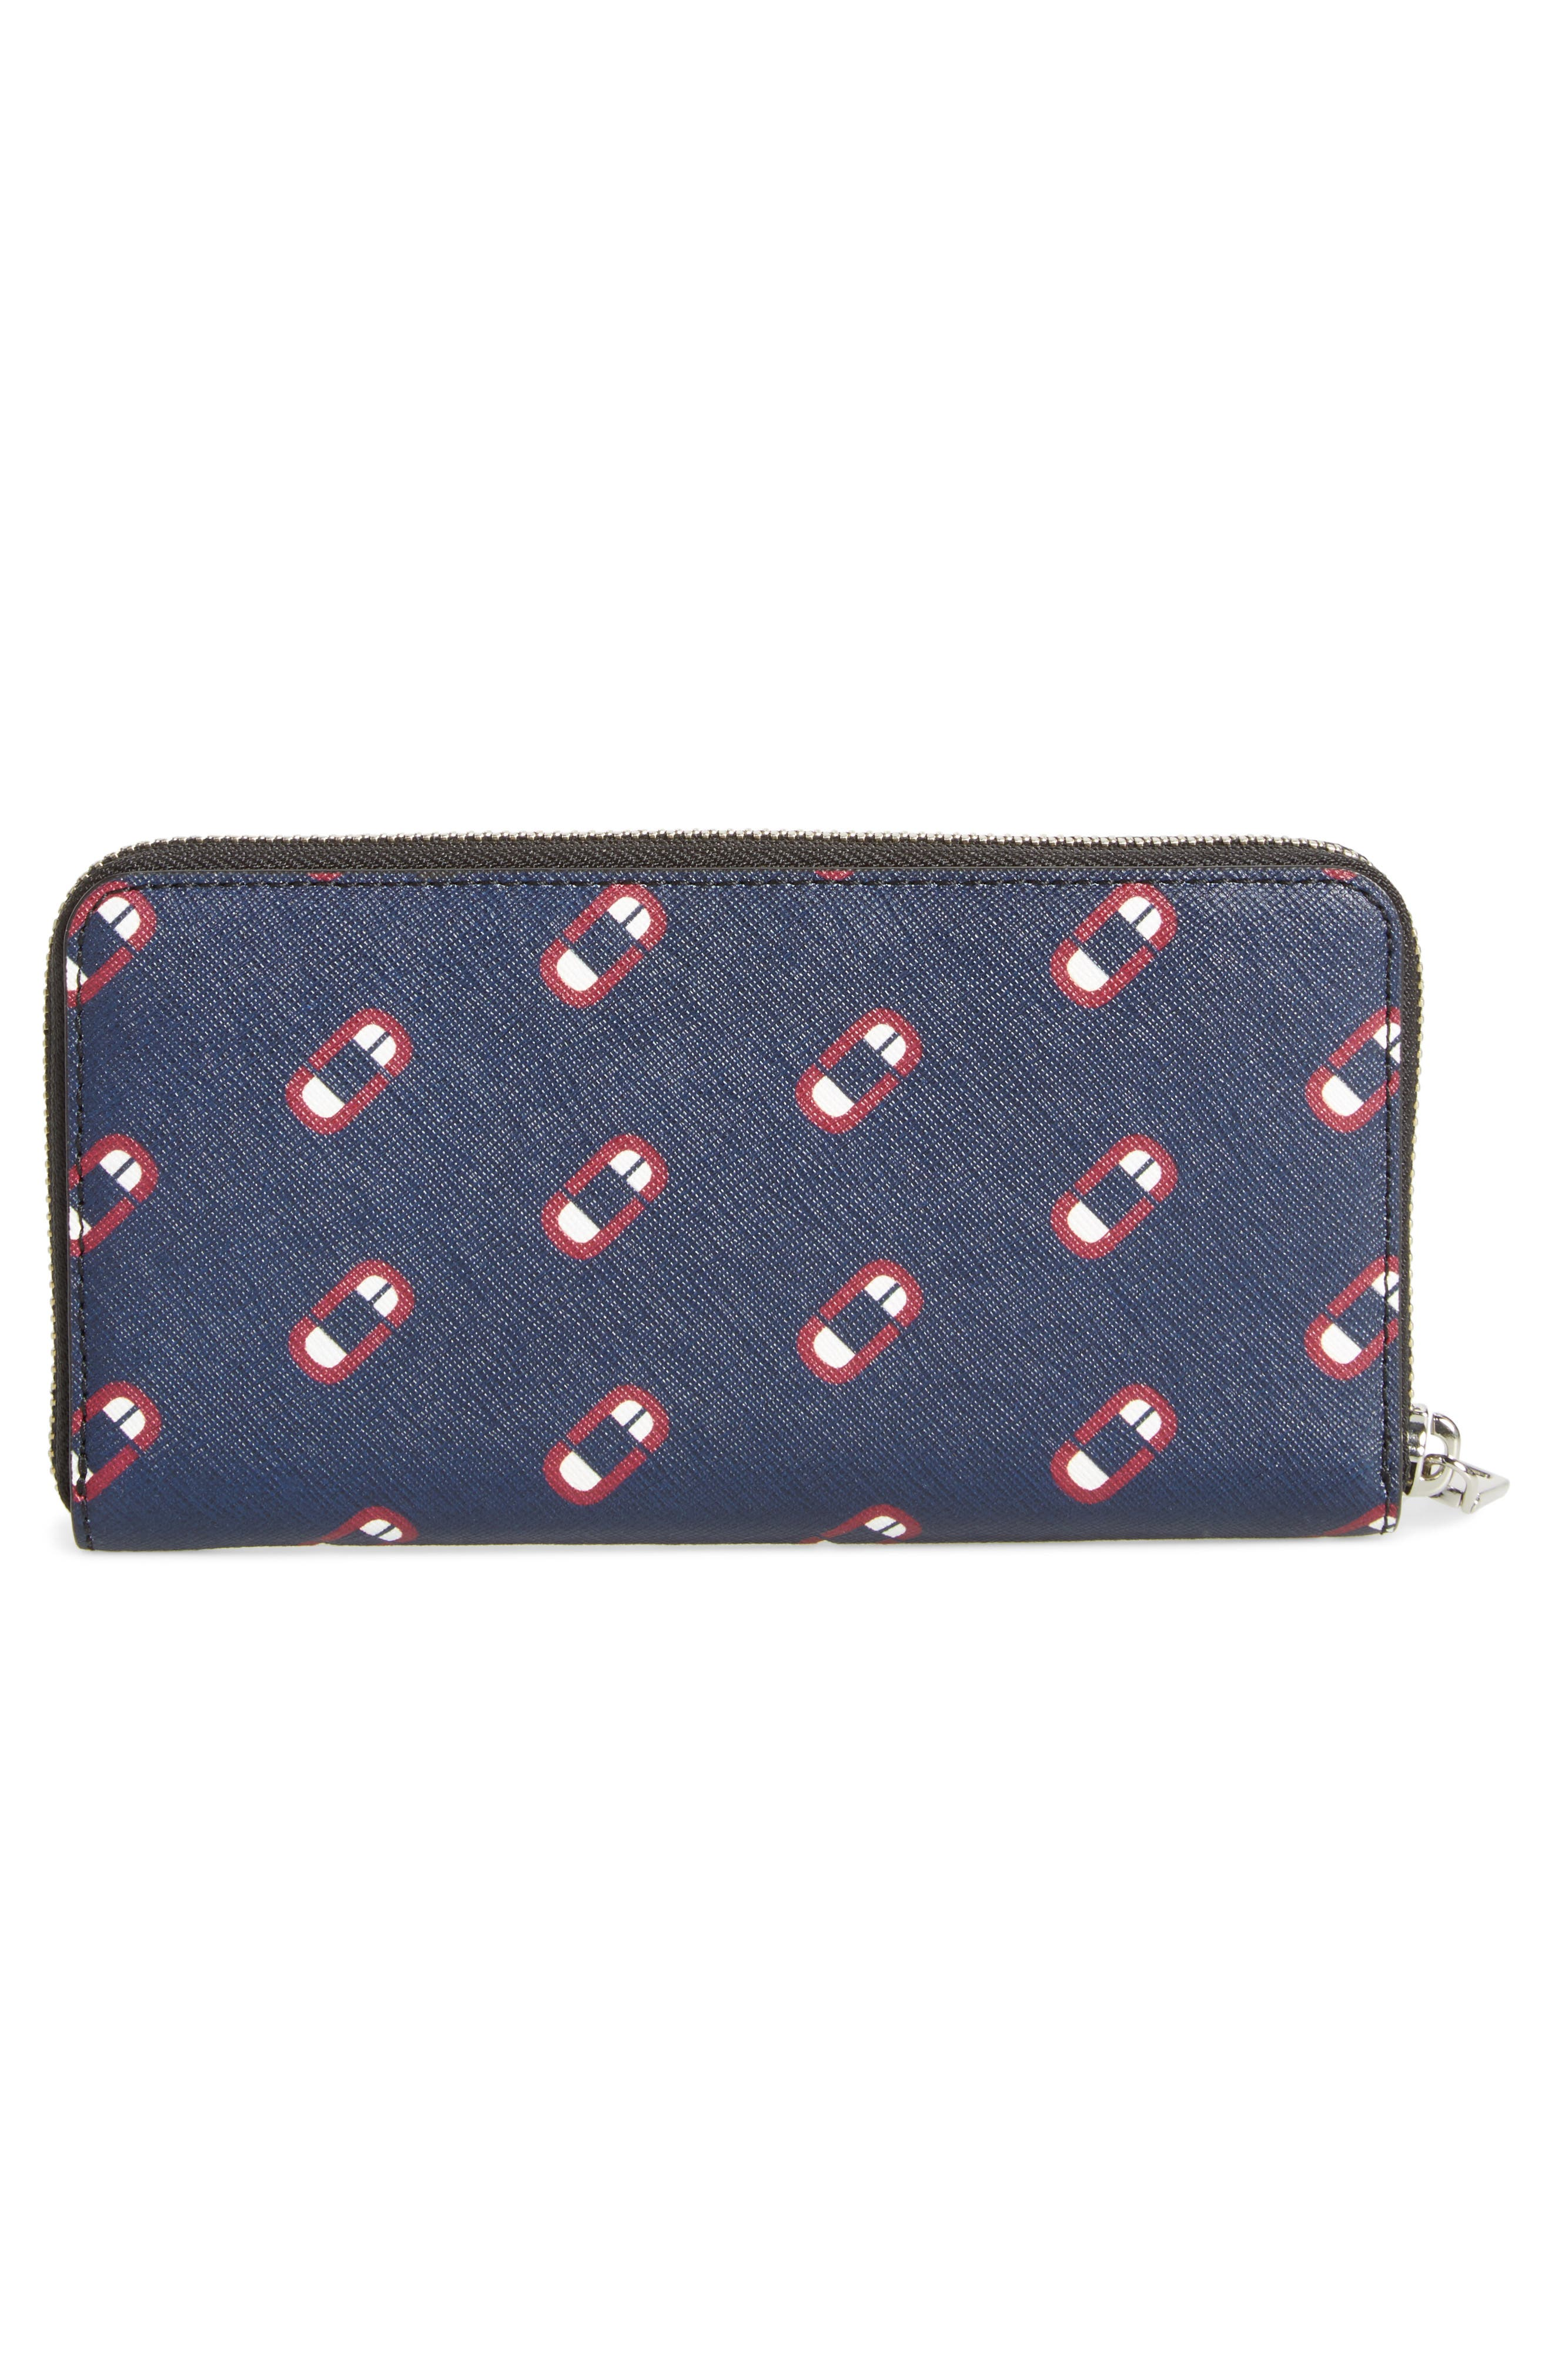 Scream Saffiano Leather Continental Wallet,                             Alternate thumbnail 2, color,                             Navy Multi